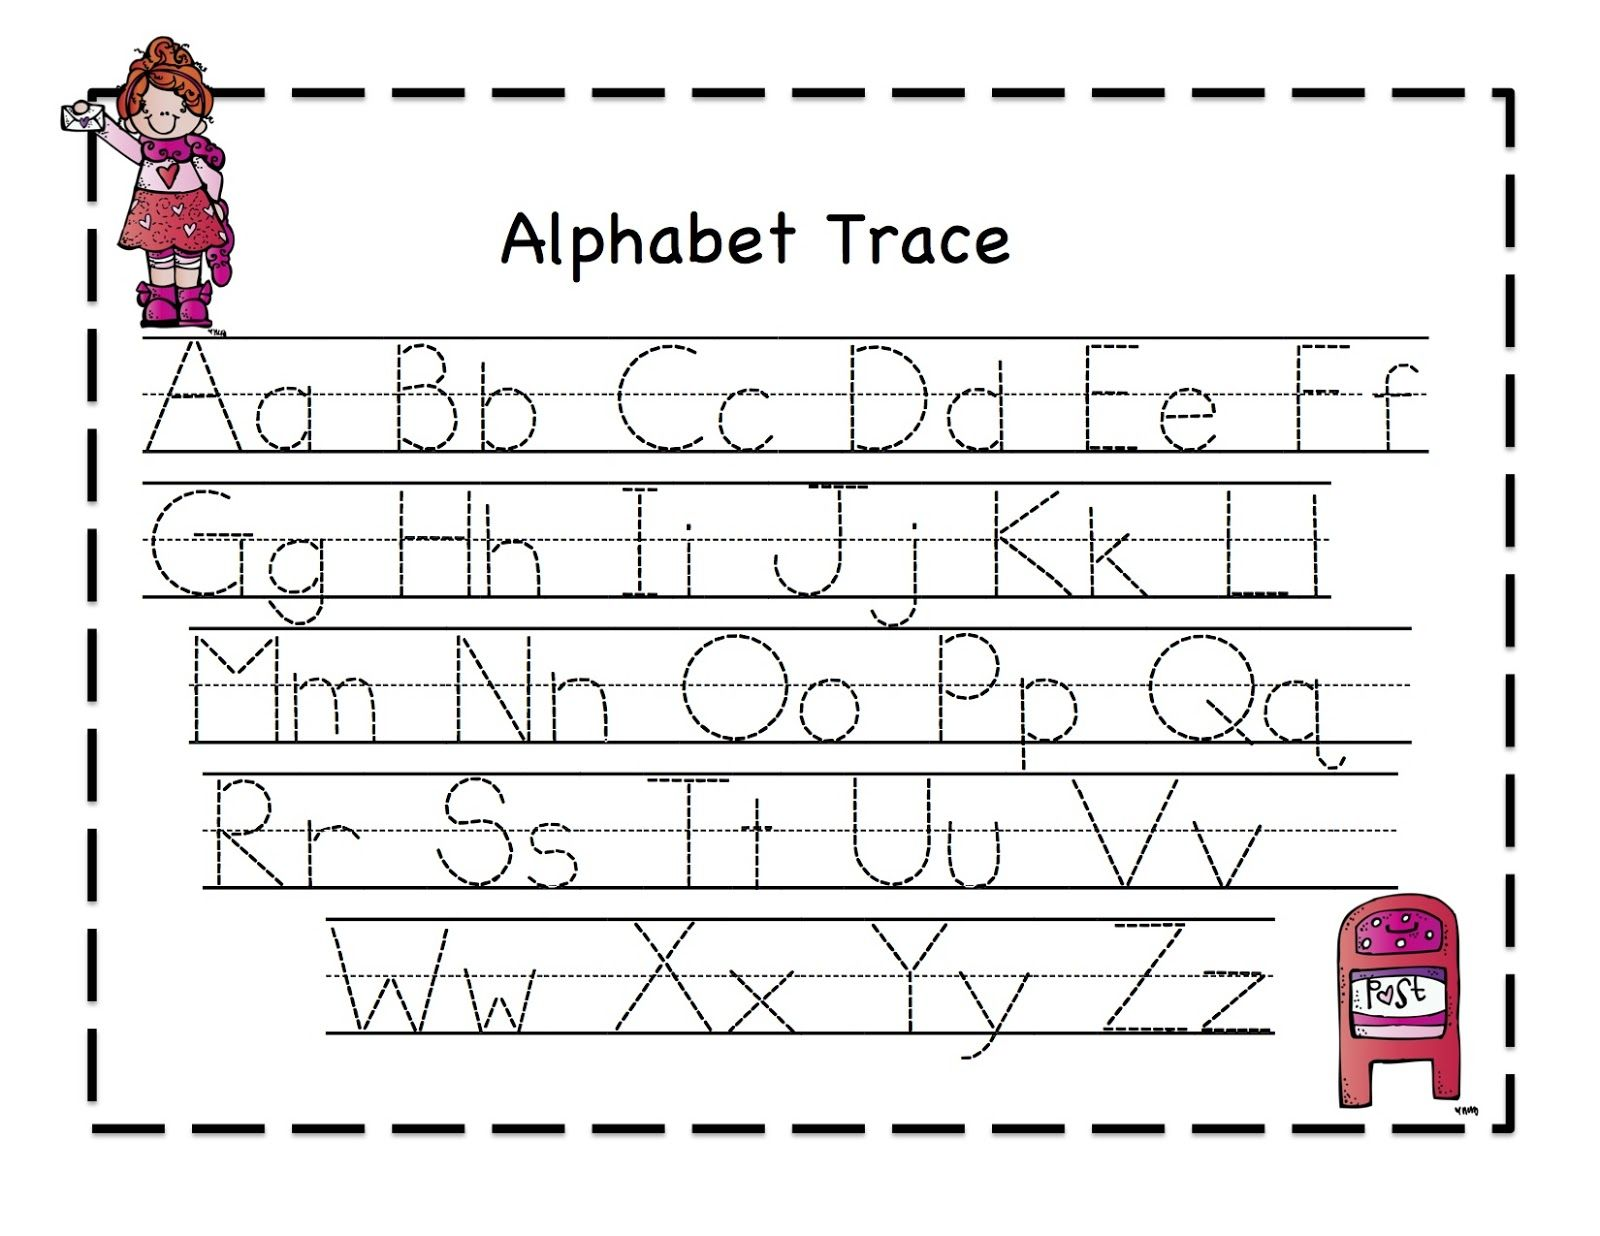 Alphabet Trace Worksheet - Khayav